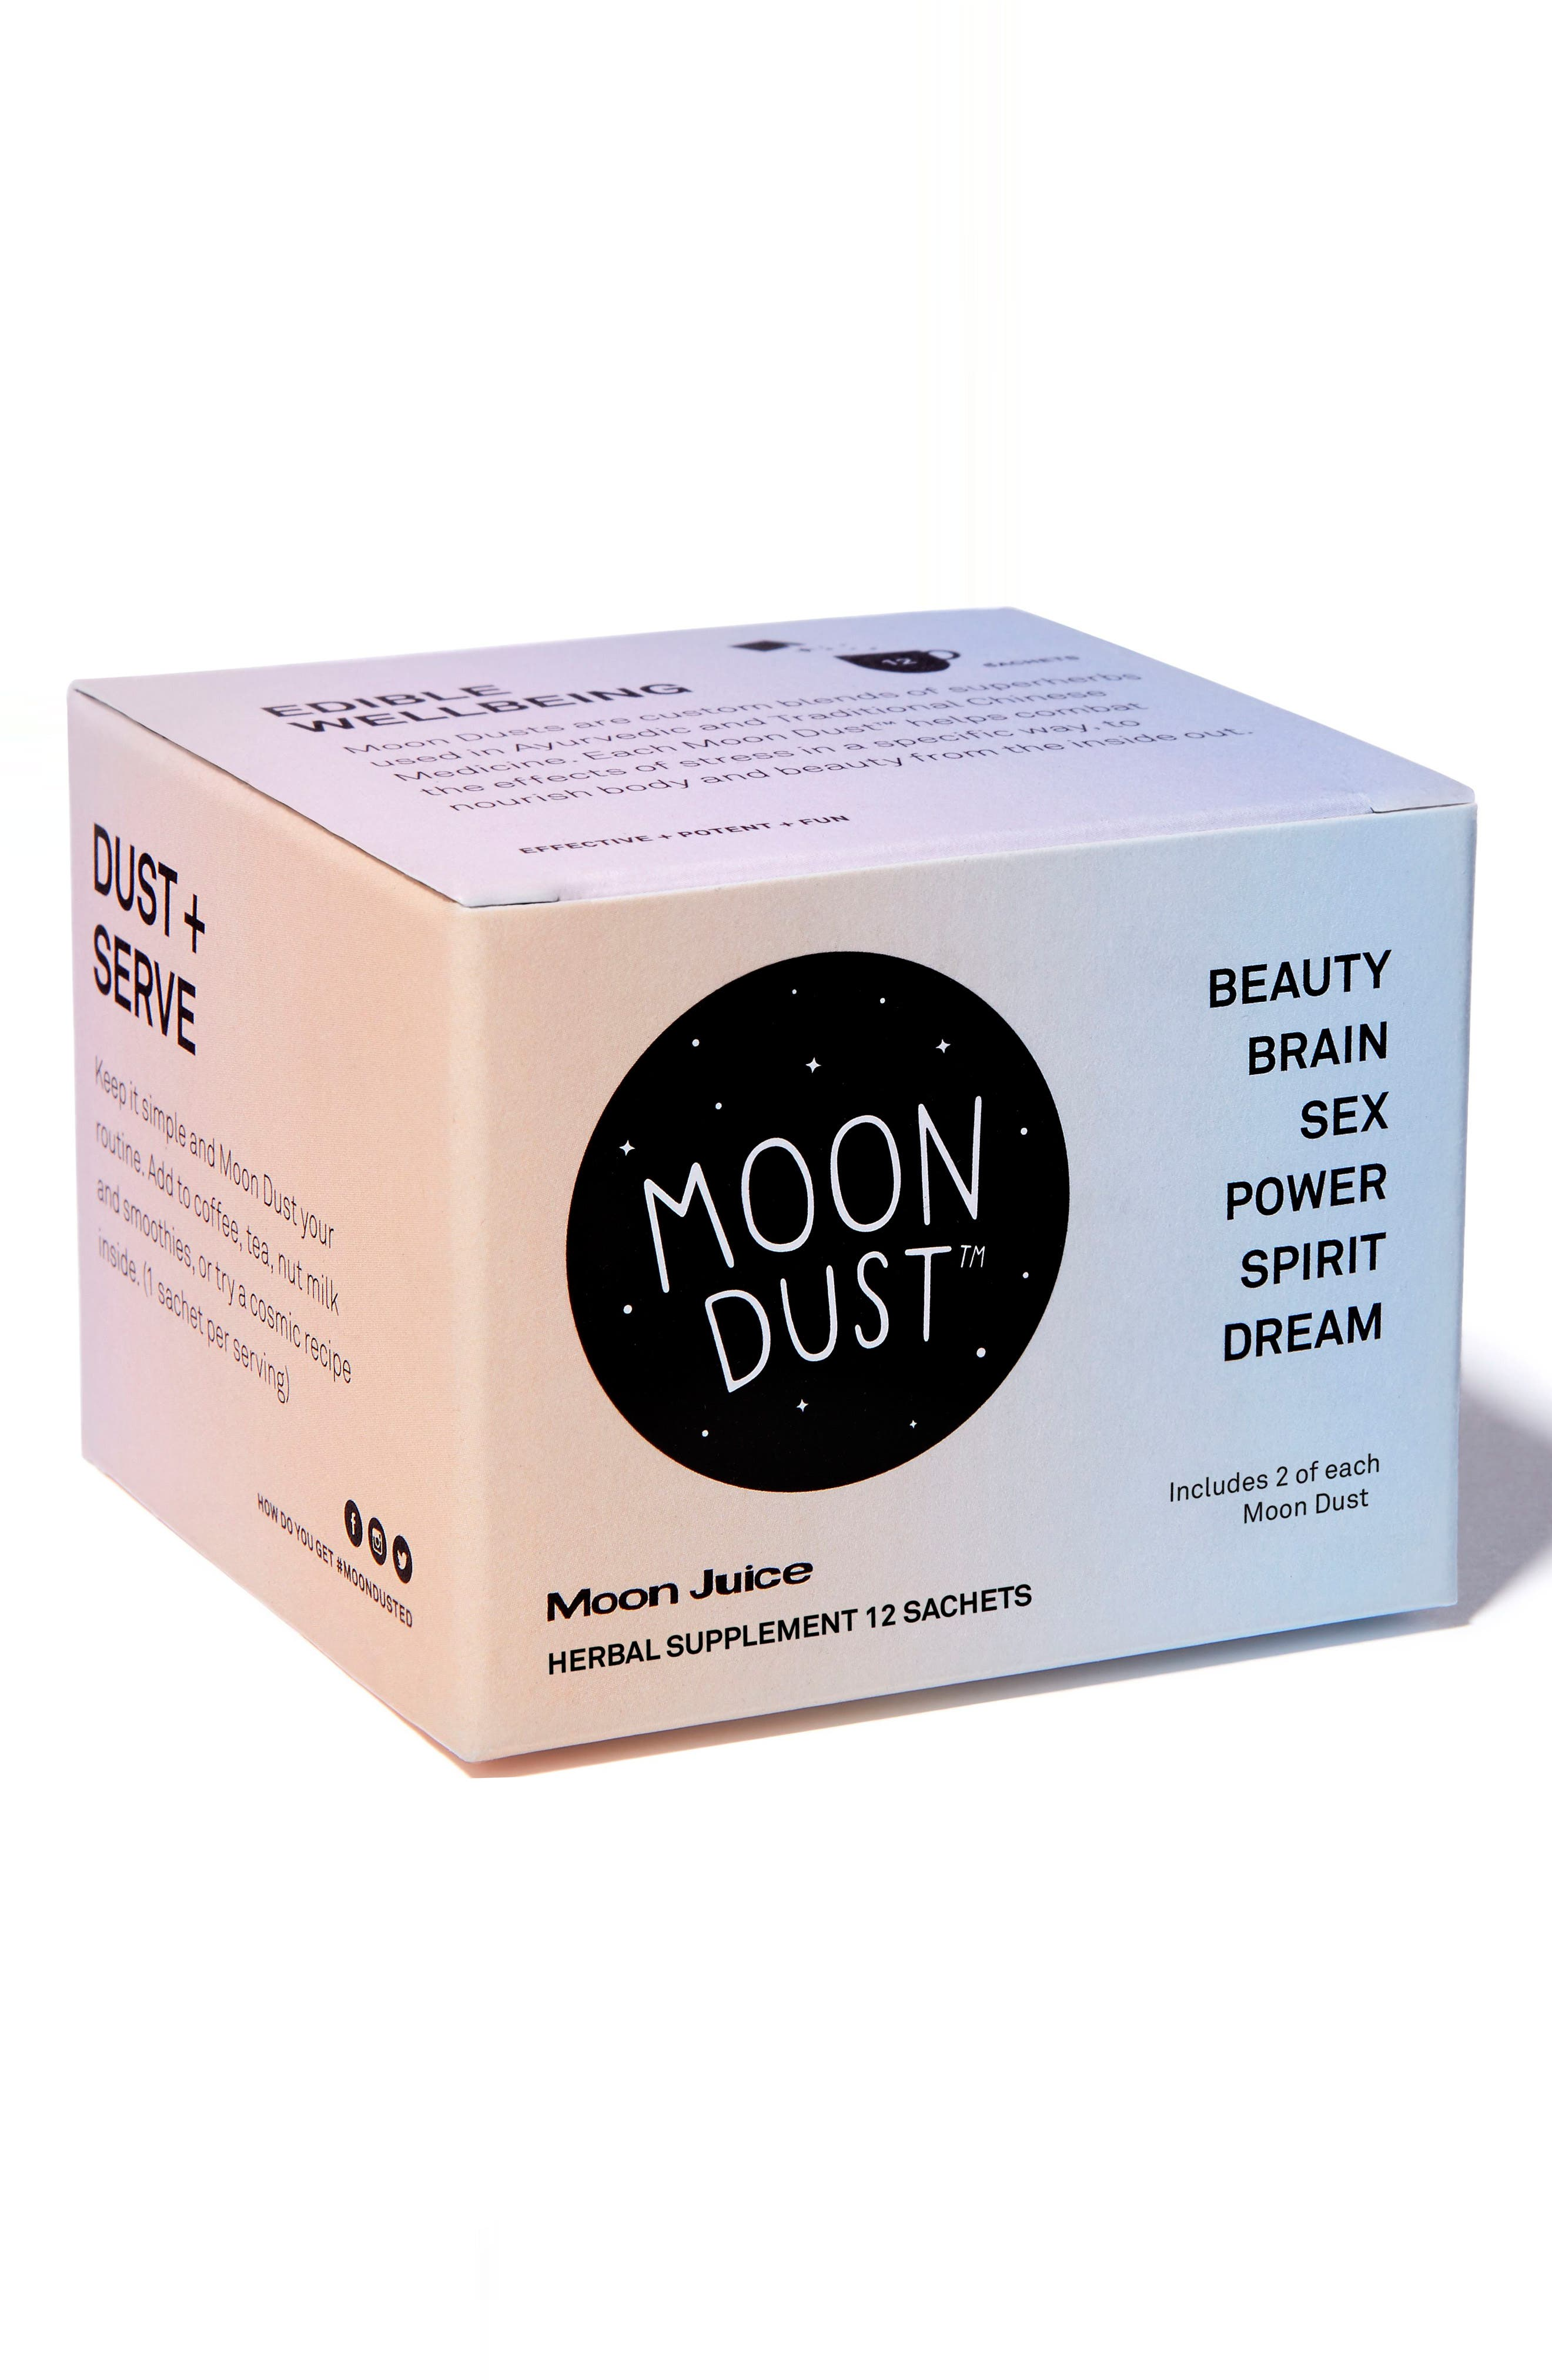 Full Moon Dust 12-Pack Sachet Box,                             Main thumbnail 1, color,                             NO COLOR